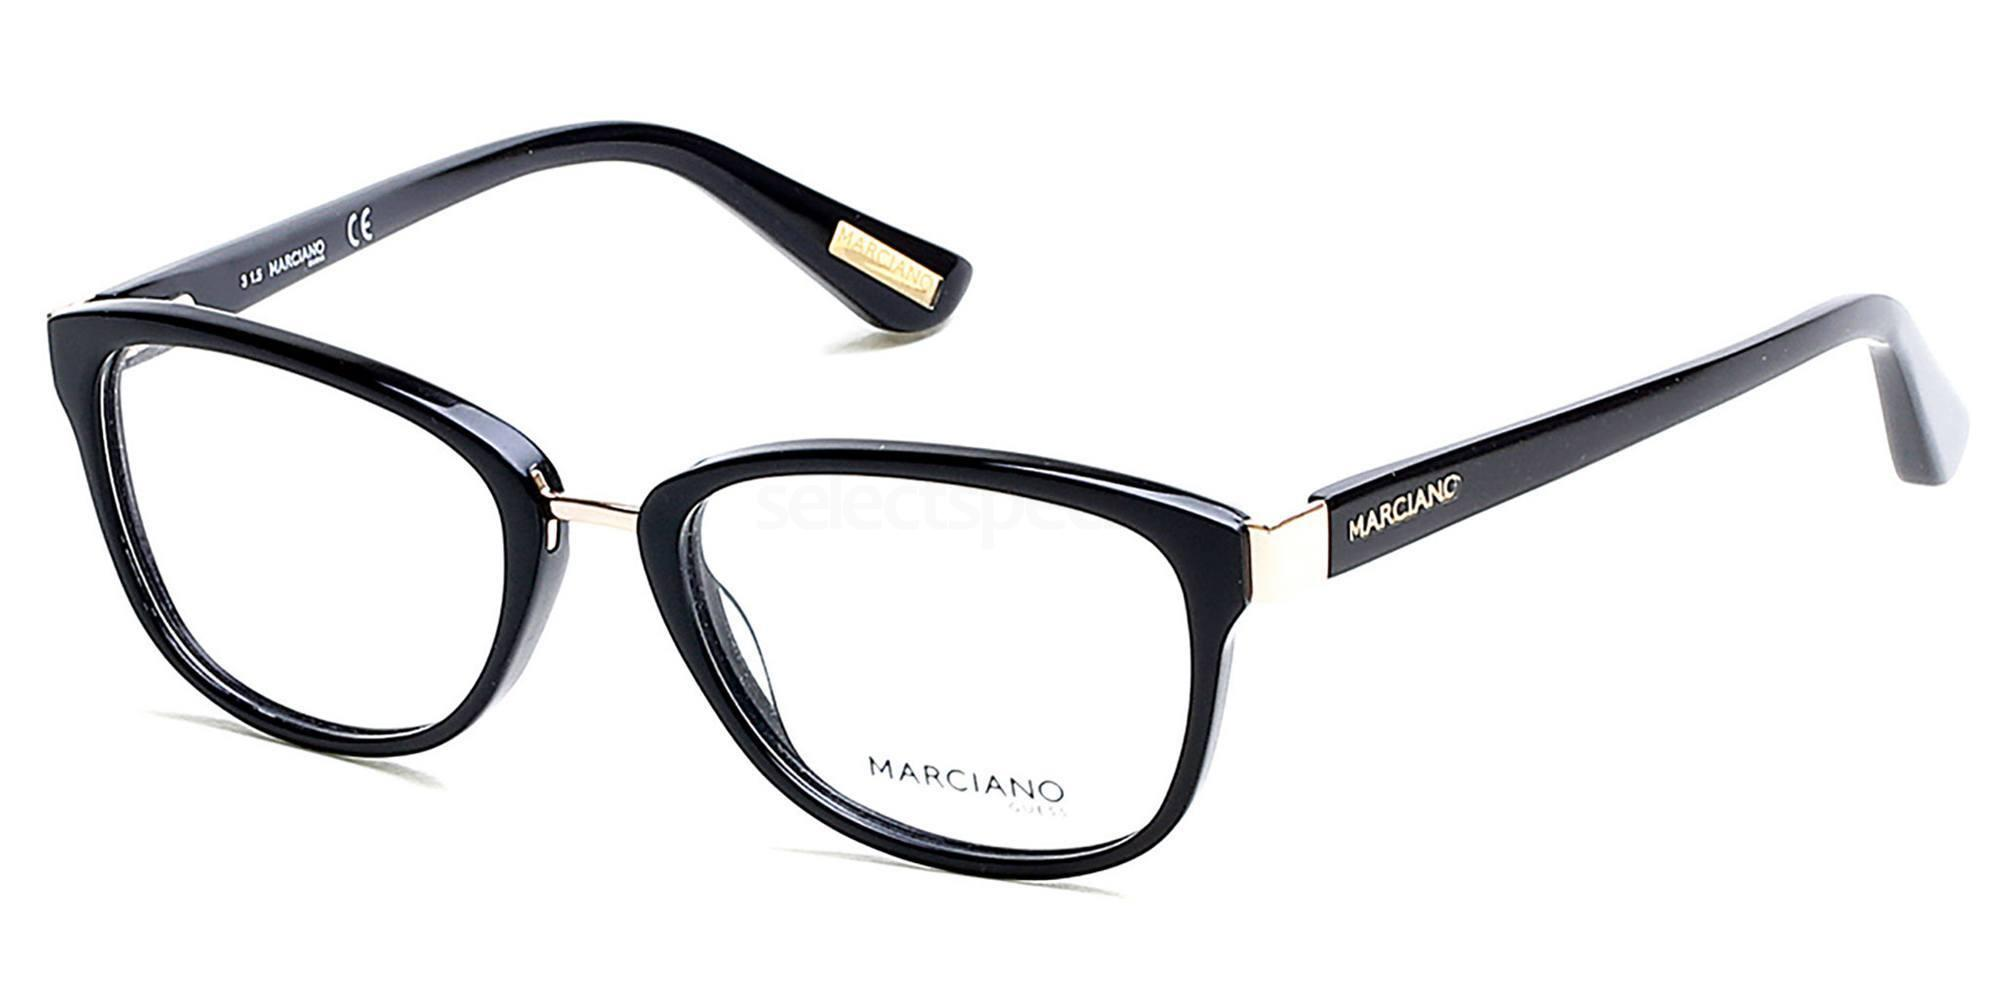 001 GM0286 Glasses, Guess by Marciano